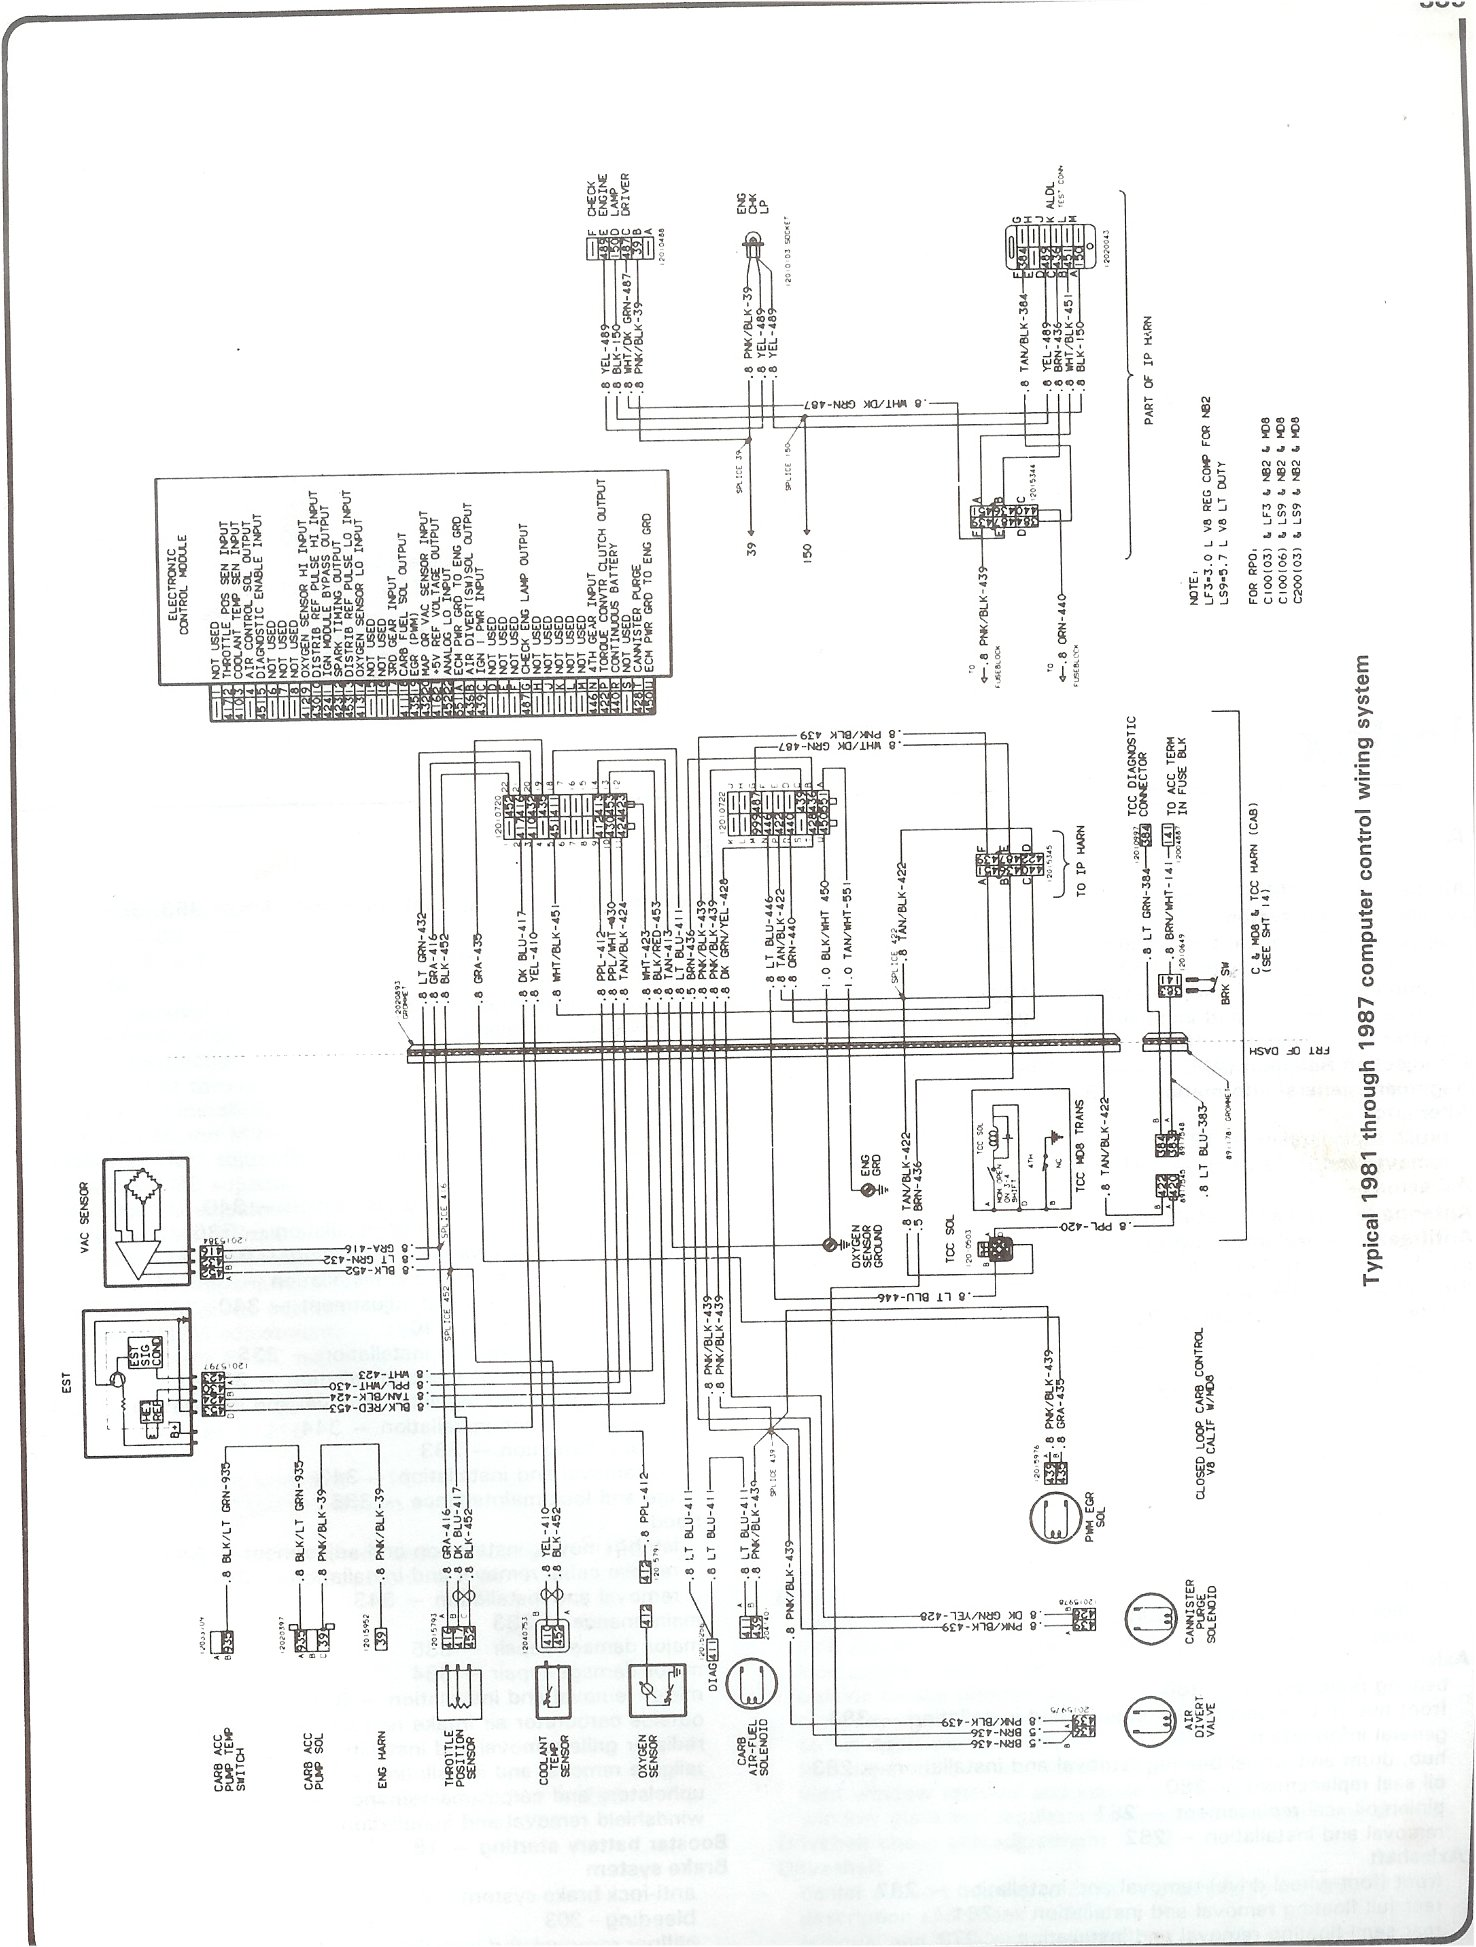 81 87_computer_control_wiring complete 73 87 wiring diagrams chevy truck wiring harness at aneh.co